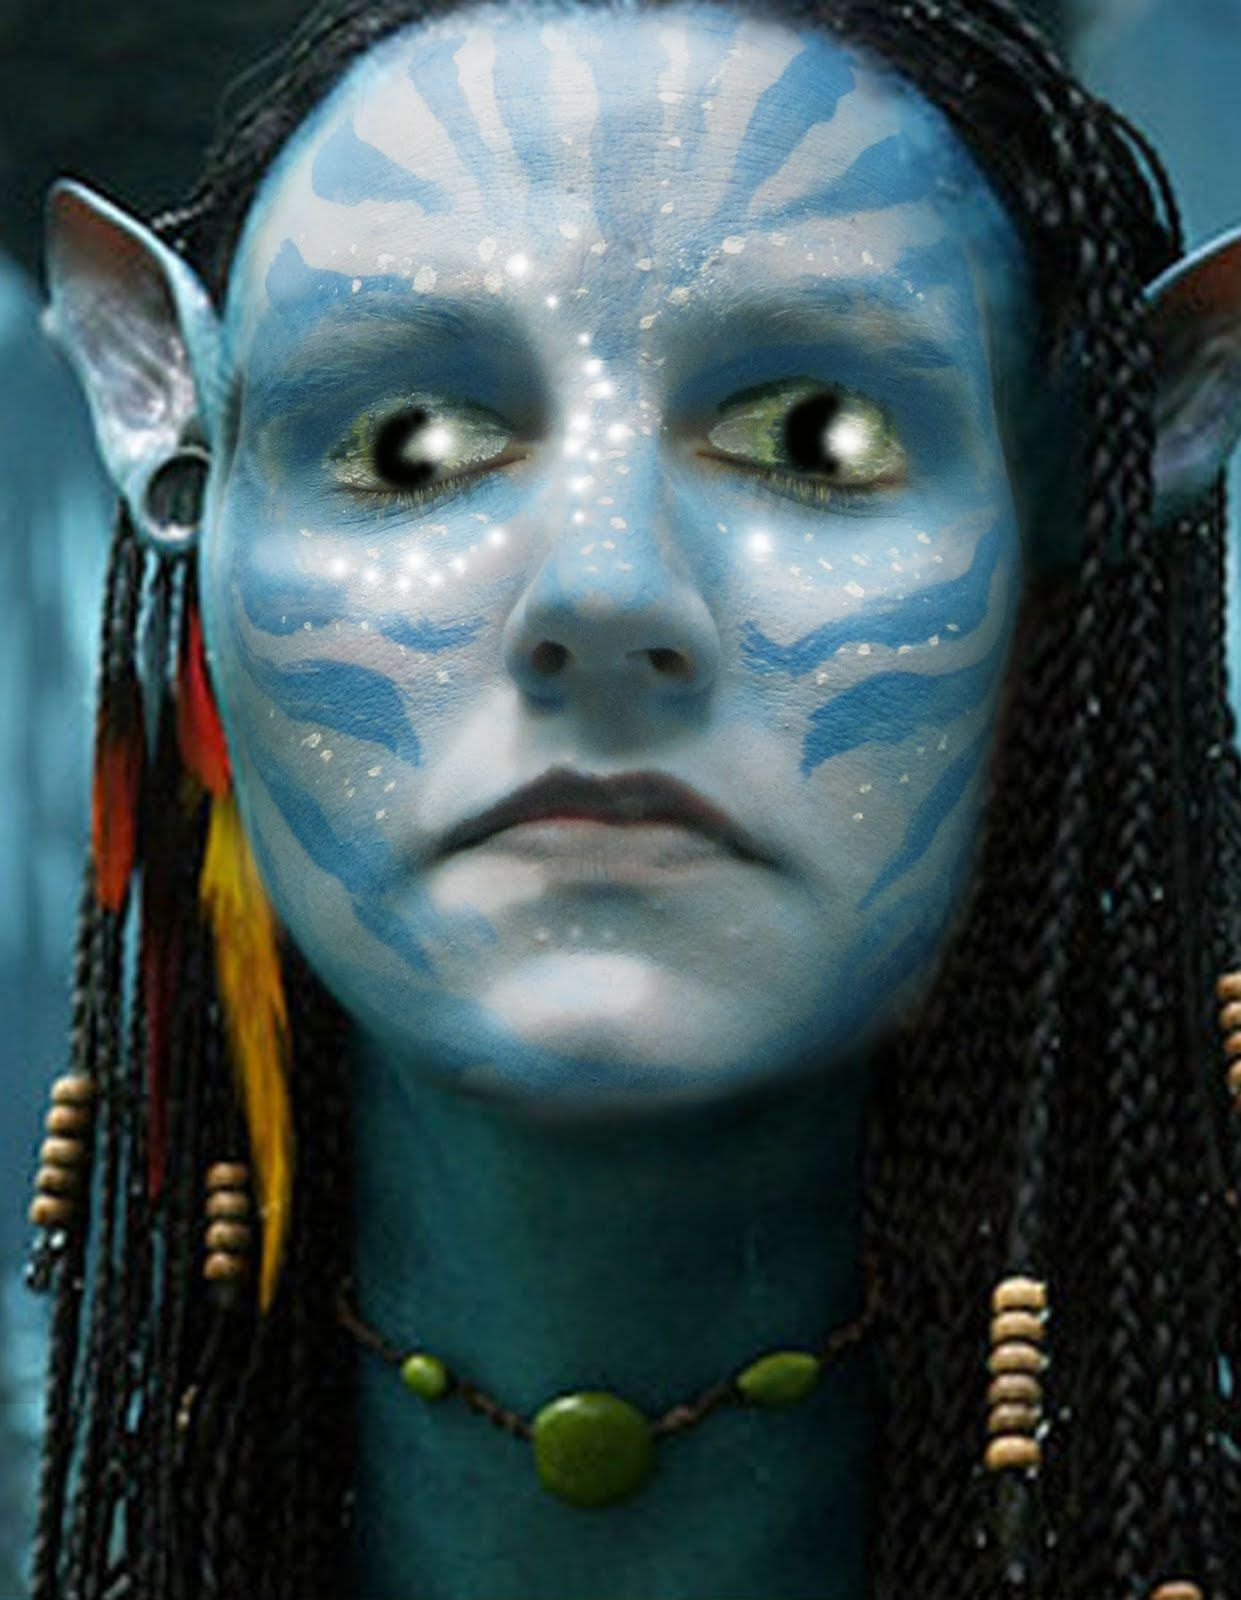 | How to Paint an Avatar Face for Halloween